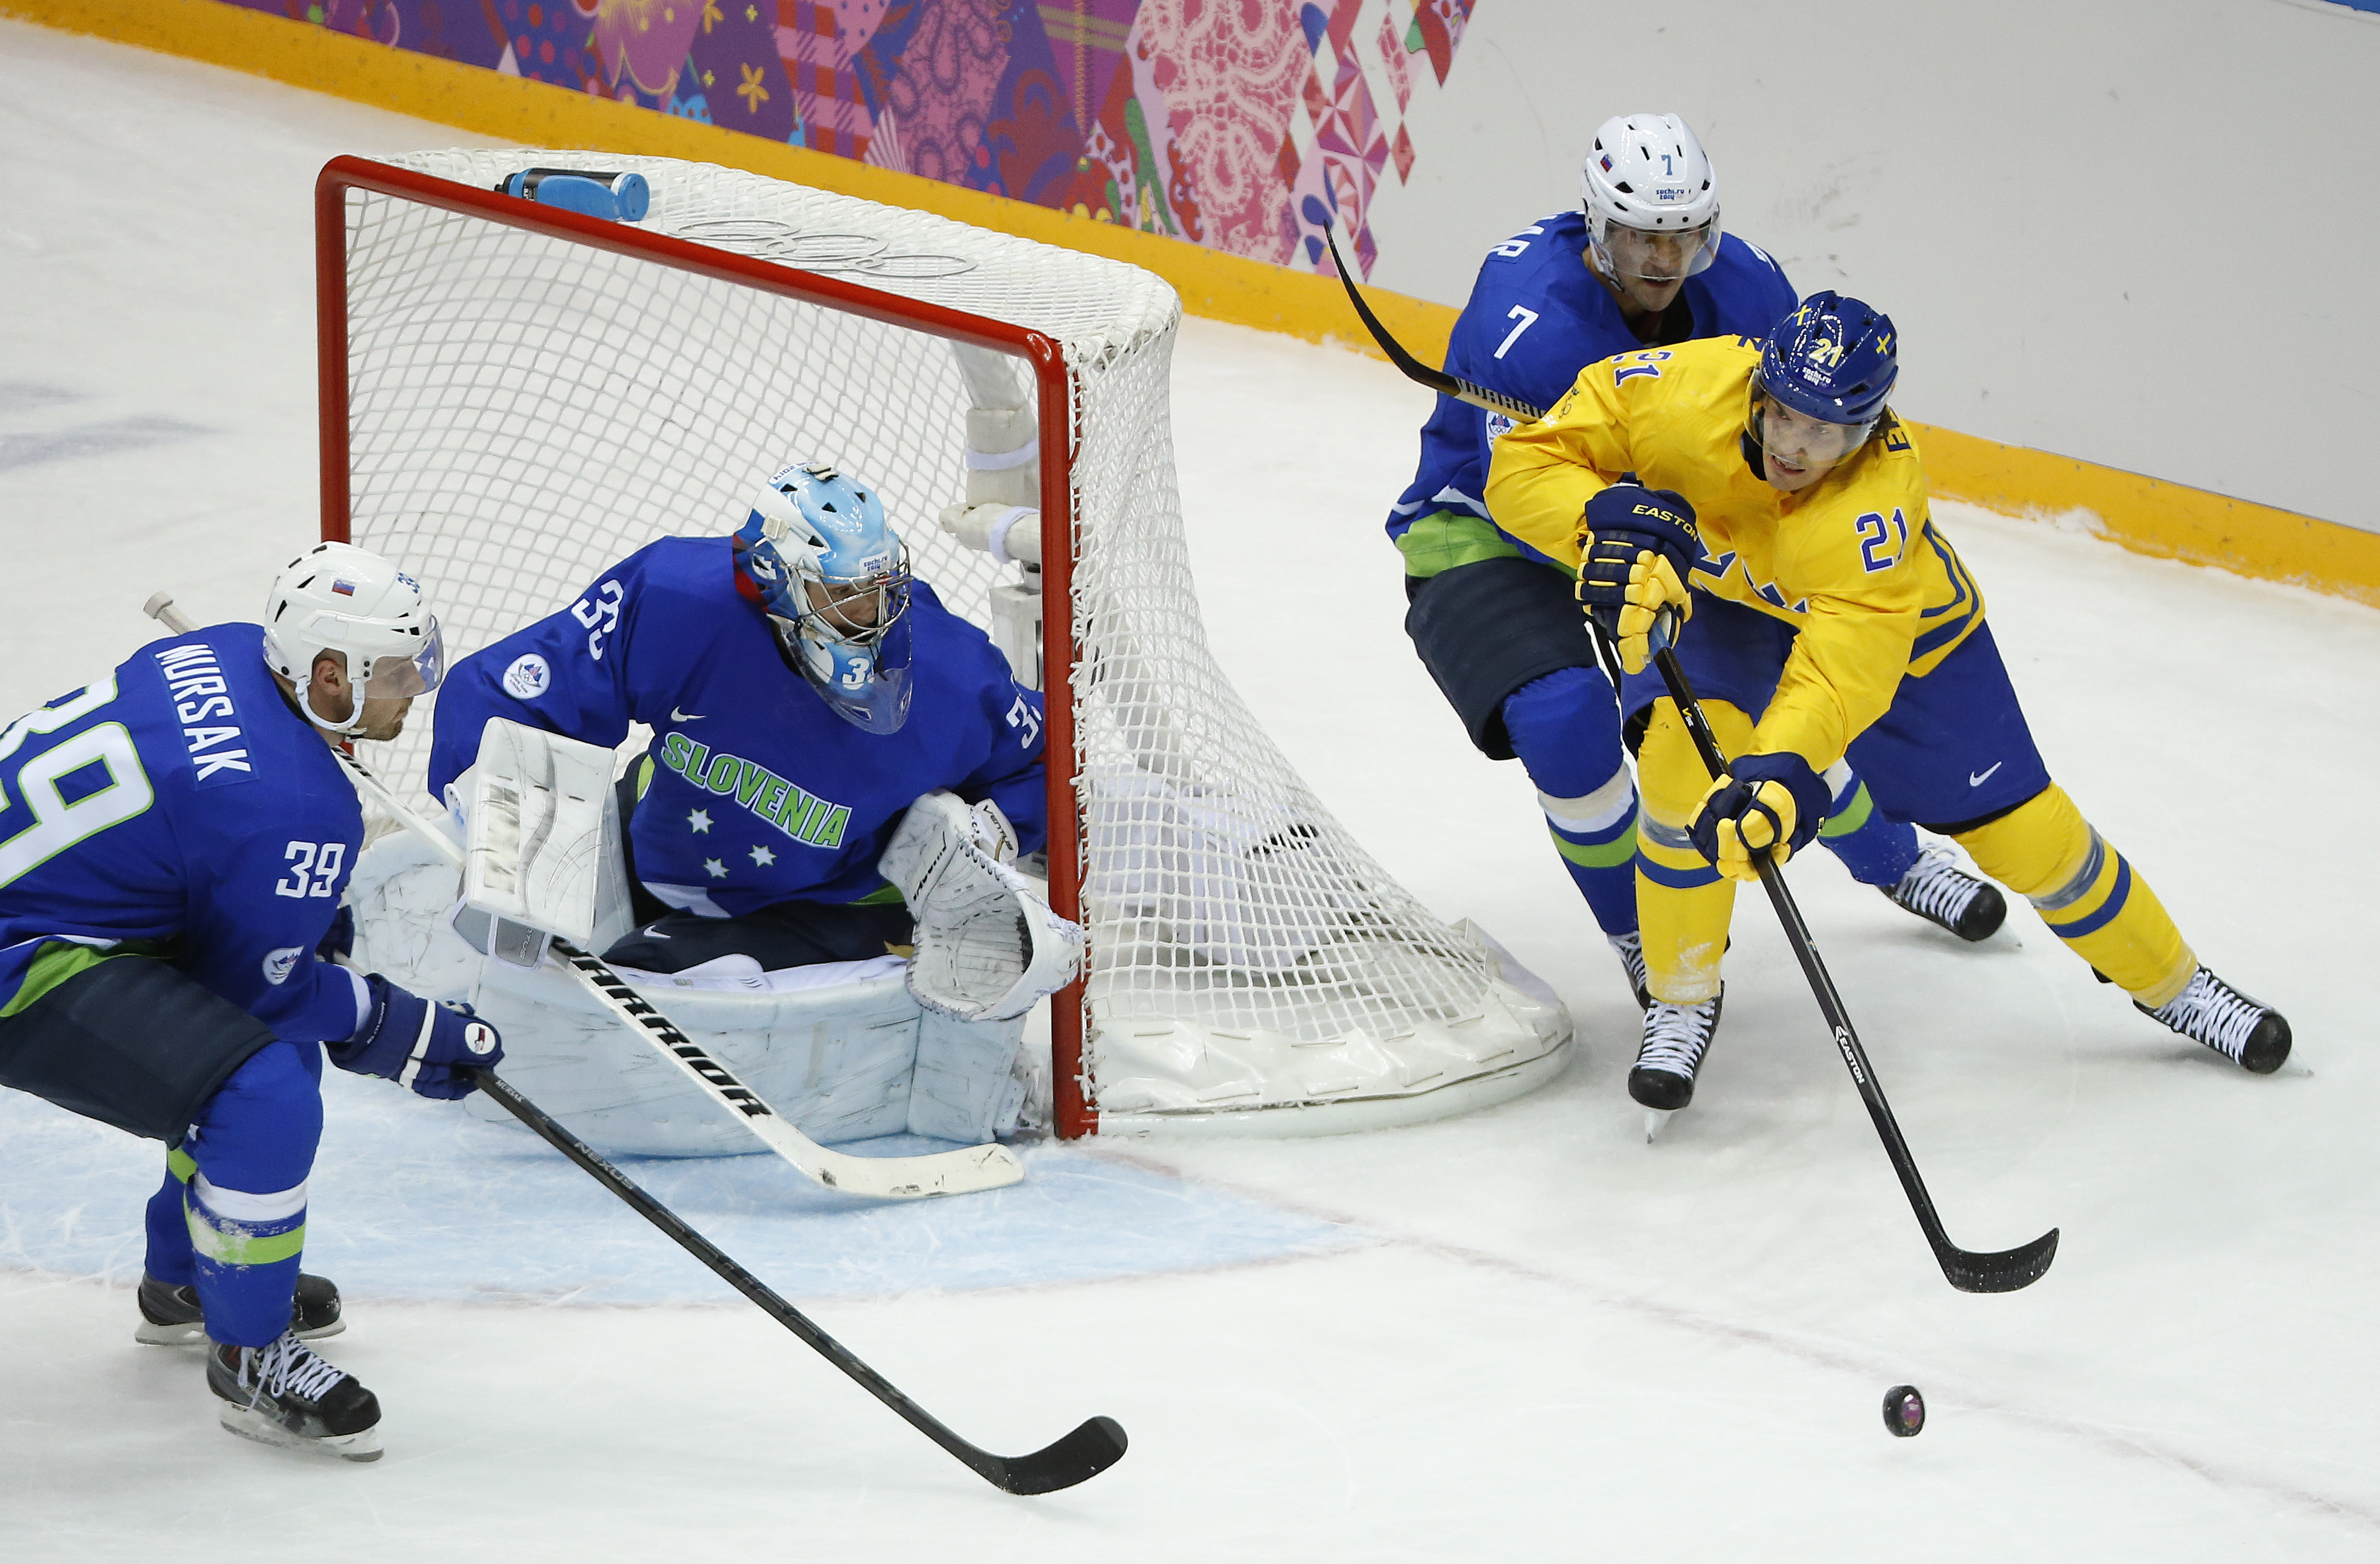 Sweden forward Loui Eriksson (21) looks to pass against Slovenia defenseman Klemen Pretnar (7) in the first period of a men's quarterfinal ice hockey game at the 2014 Winter Olympics, Wednesday, Feb. 19, 2014, in Sochi, Russia. (AP Photo/Mark Humphrey)